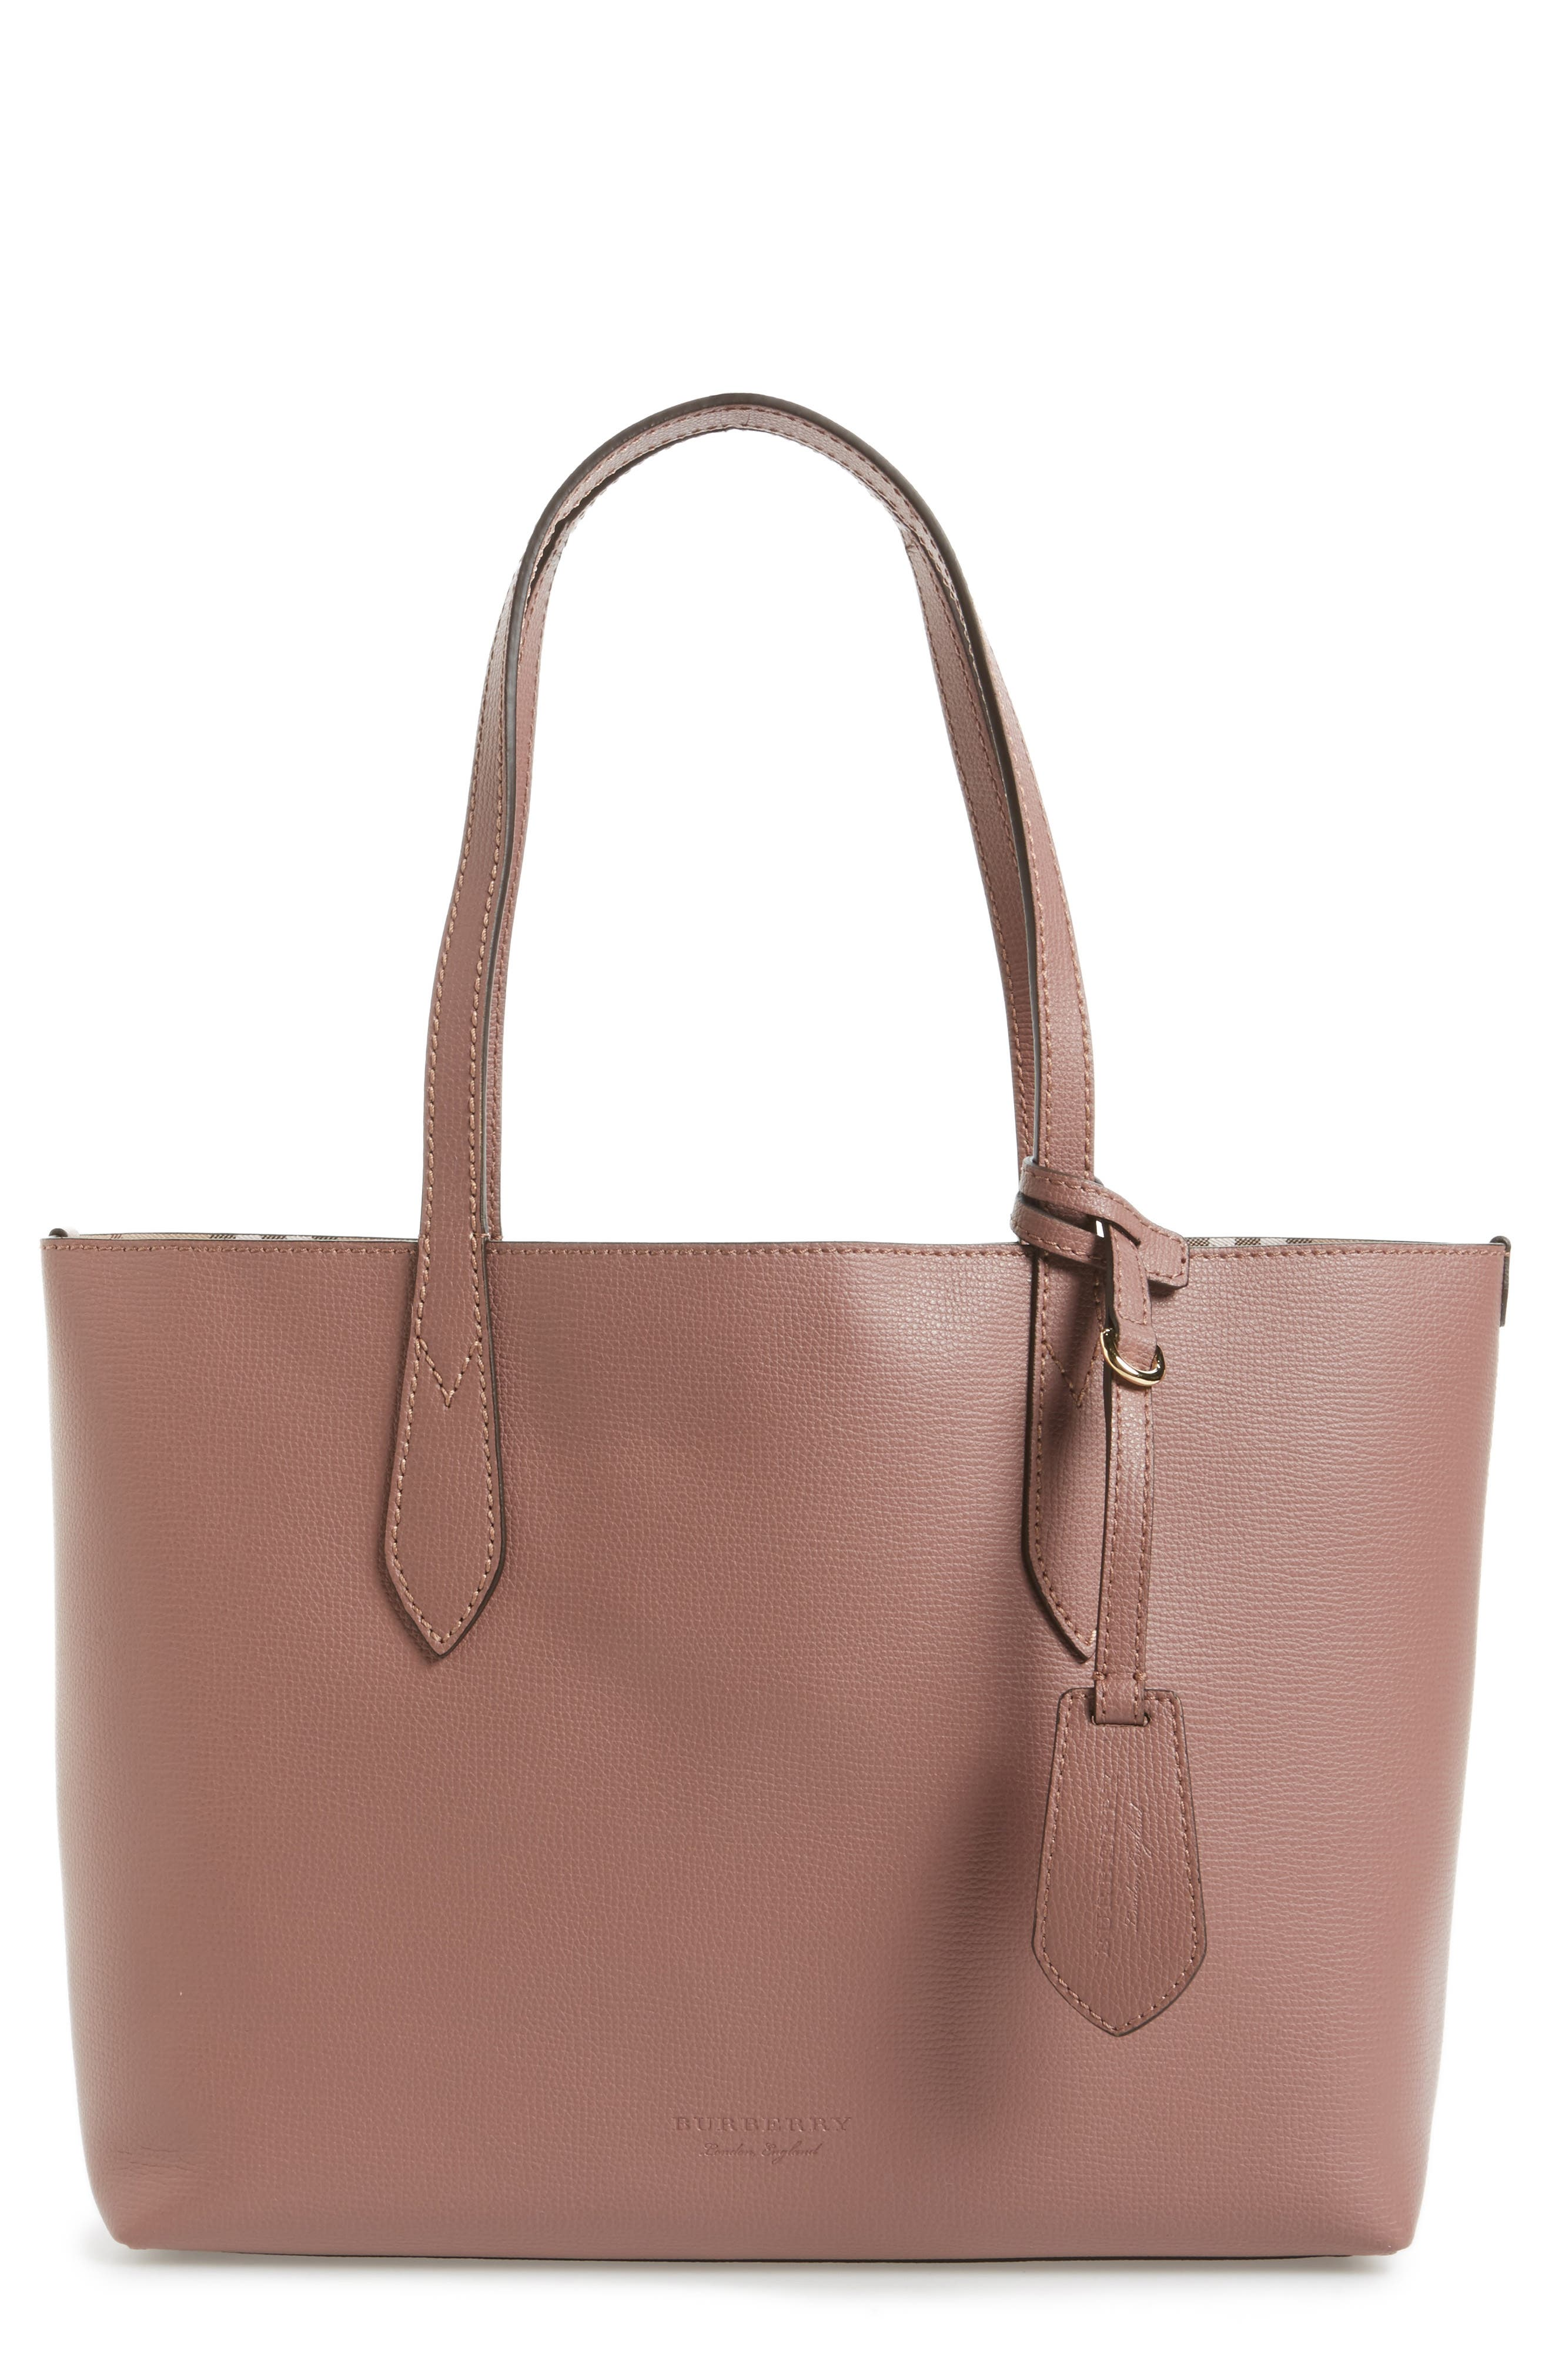 Burberry Small Reversible Haymarket Check & Leather Tote